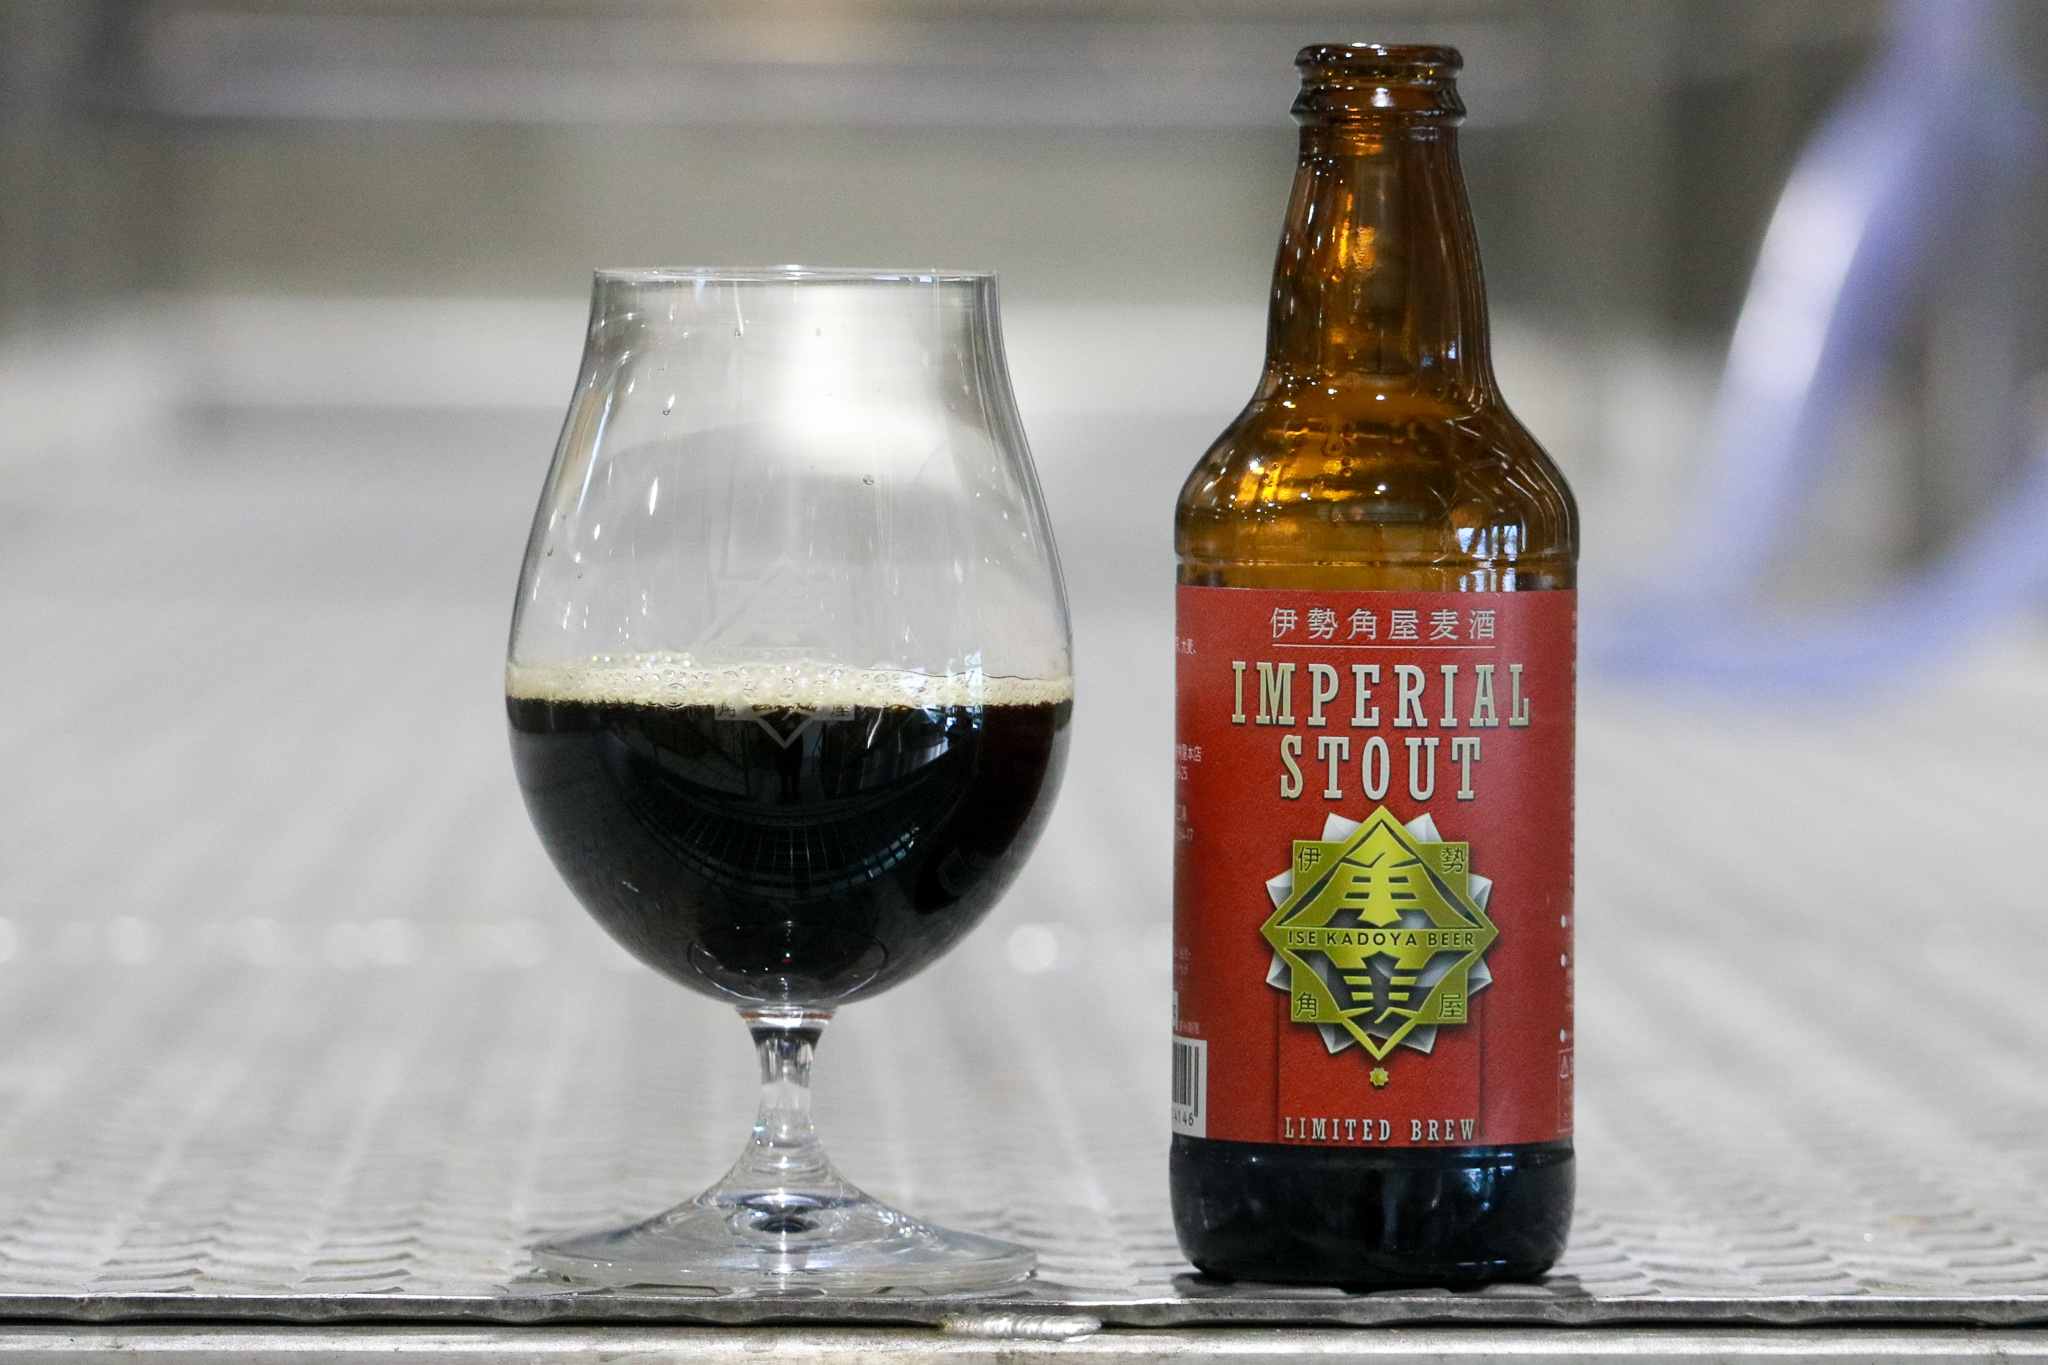 IMPERIAL STOUT味わい